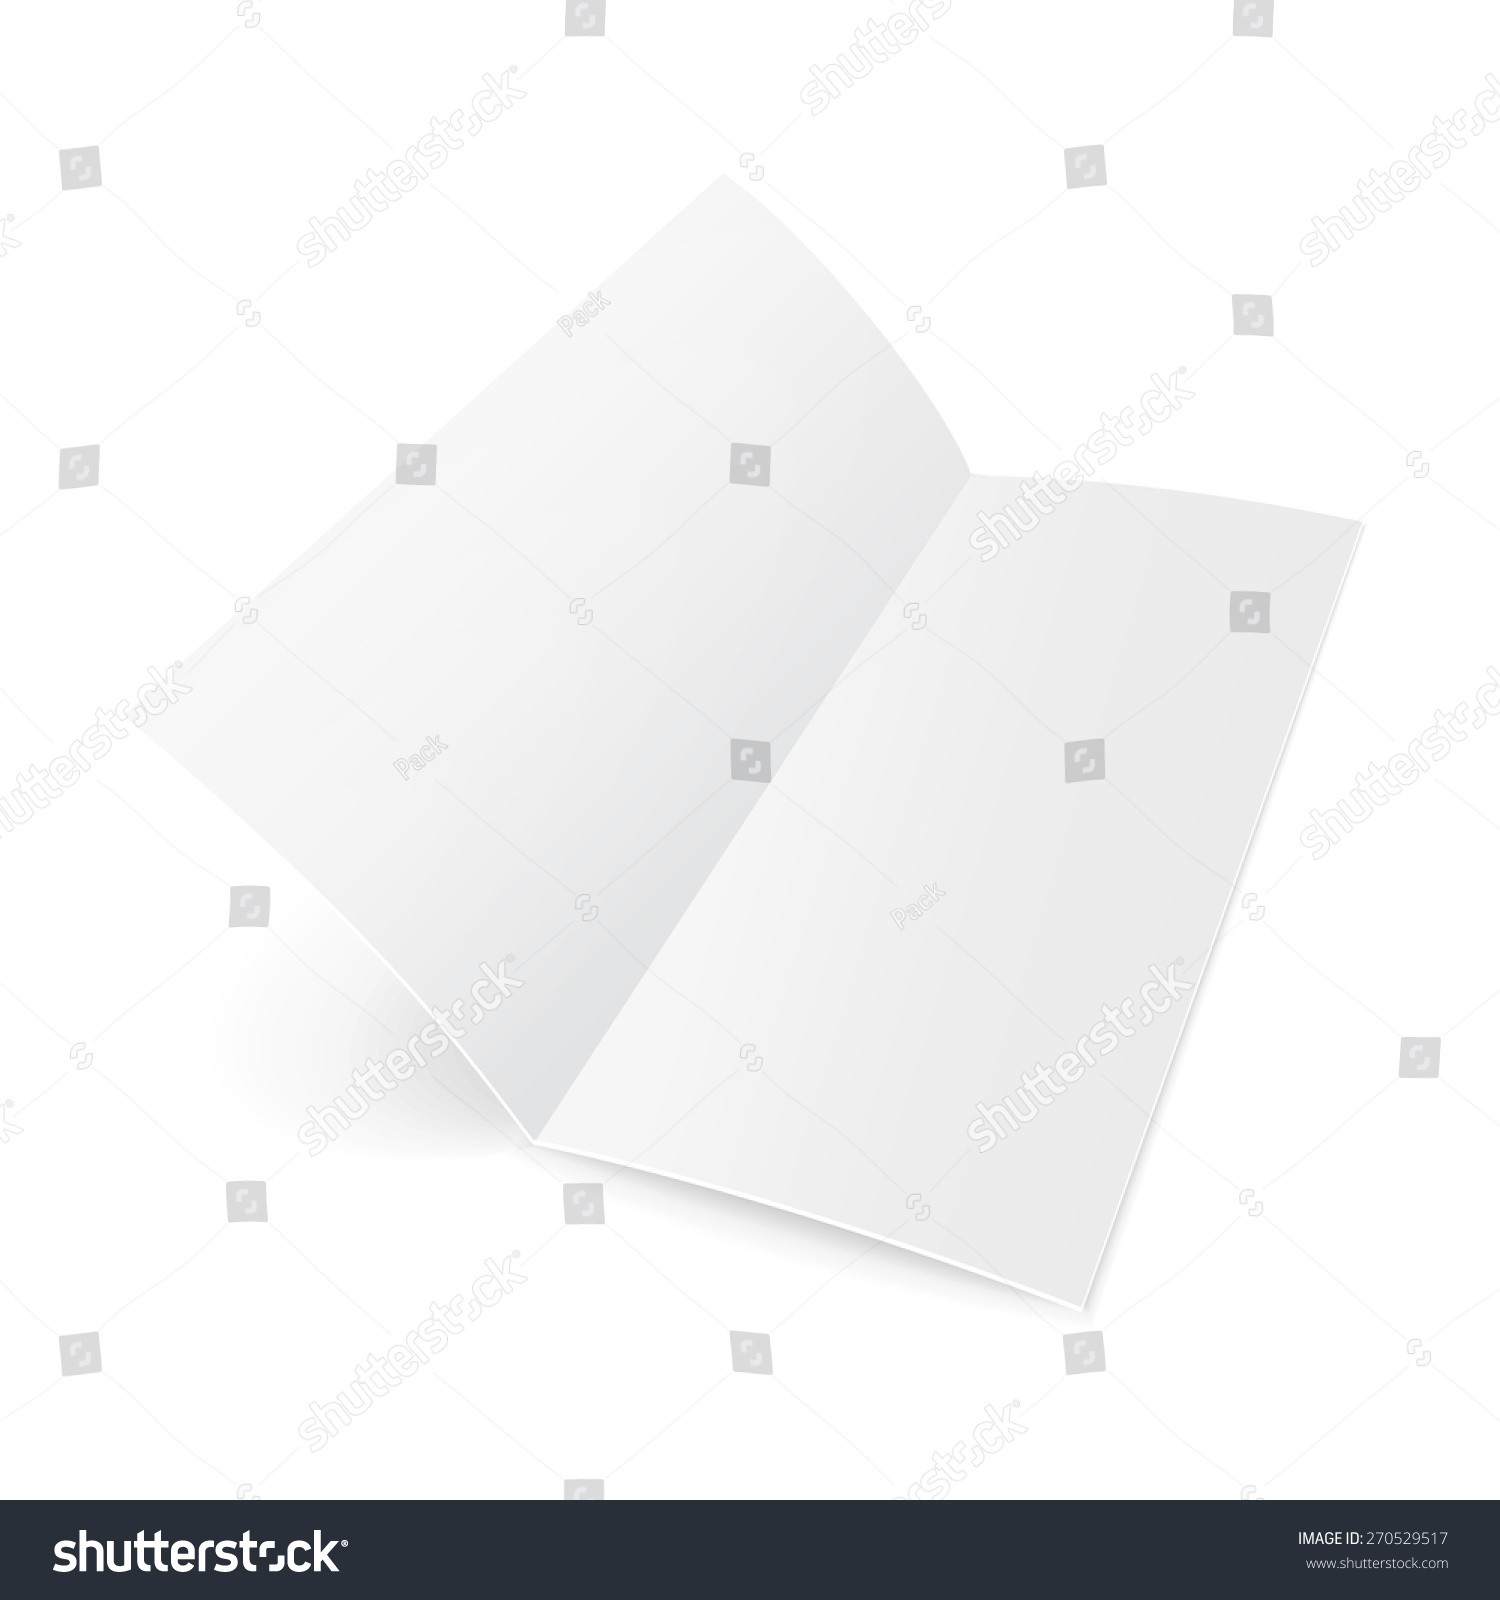 Blank twofold trifold folded sheet paper stock vector for Paper brochure holder template